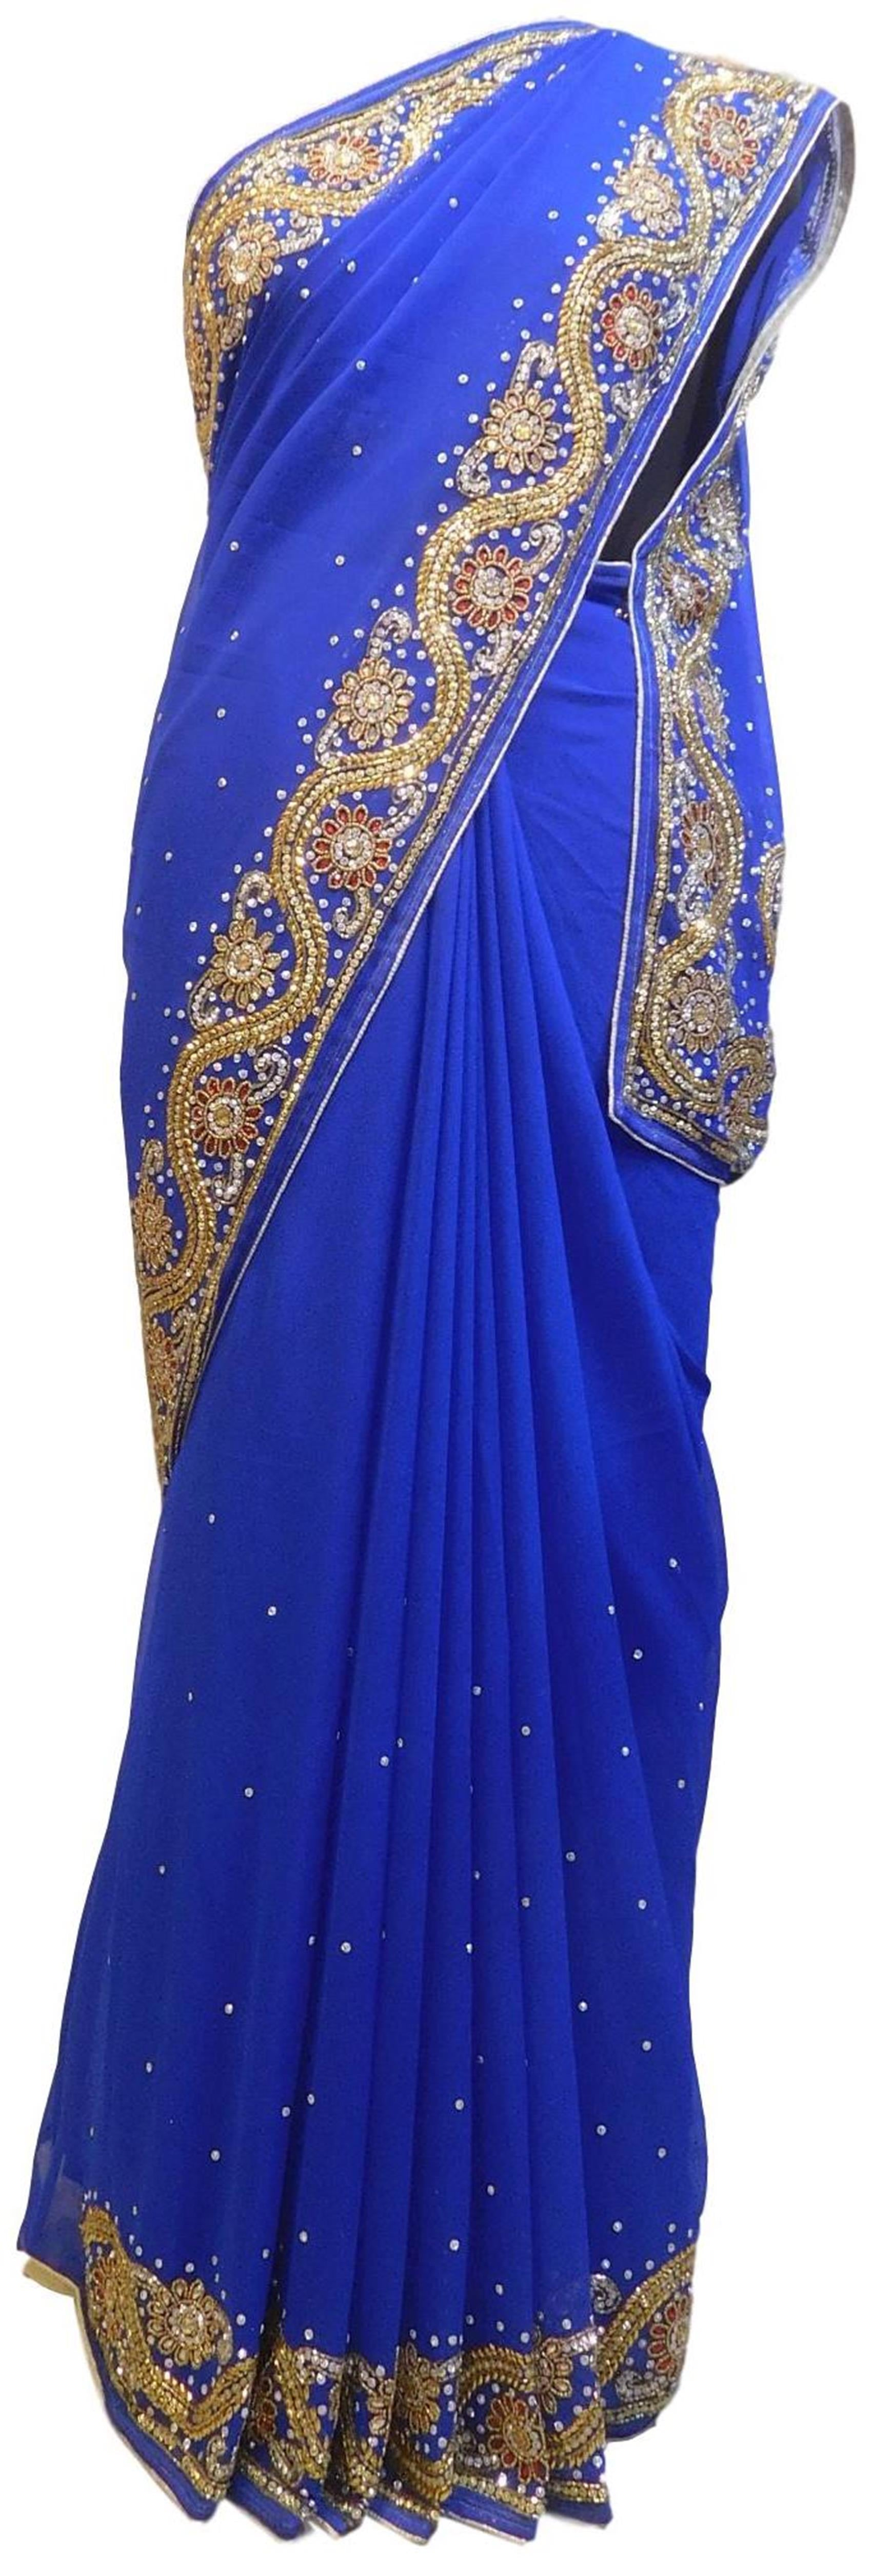 Blue Designer Wedding Partywear Georgette Hand Embroidery Cutdana Stone Beads Work Kolkata Saree Sari E362